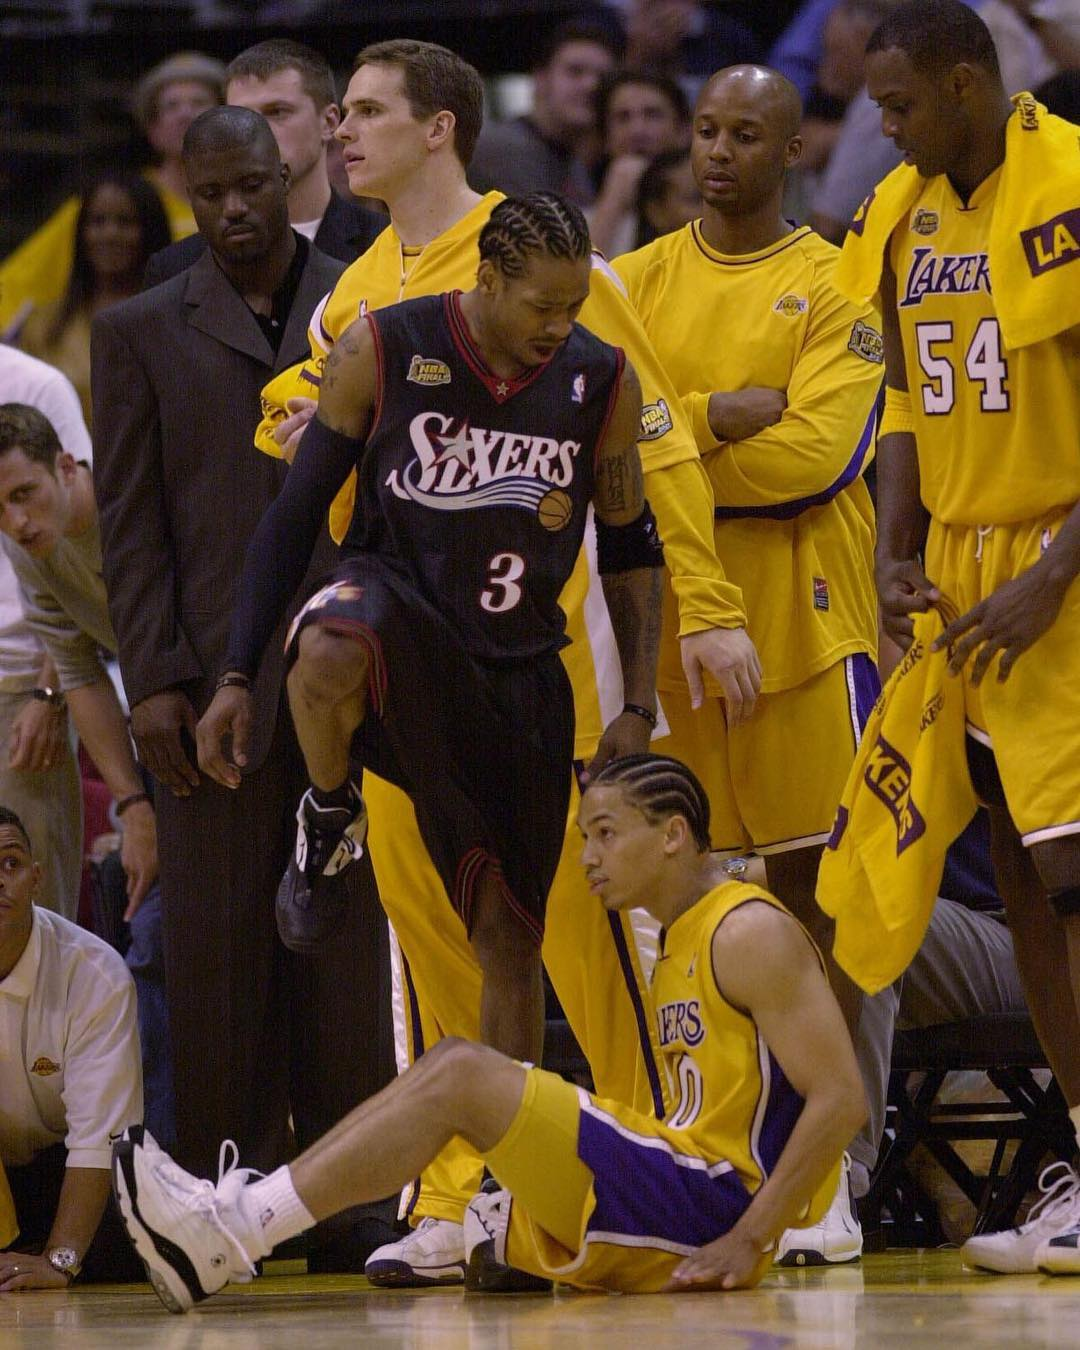 Today in Sneaker History, 2001, Allen Iverson crosses up Tyronn Lue in the NBA Finals. Is this AI's most iconic moment?